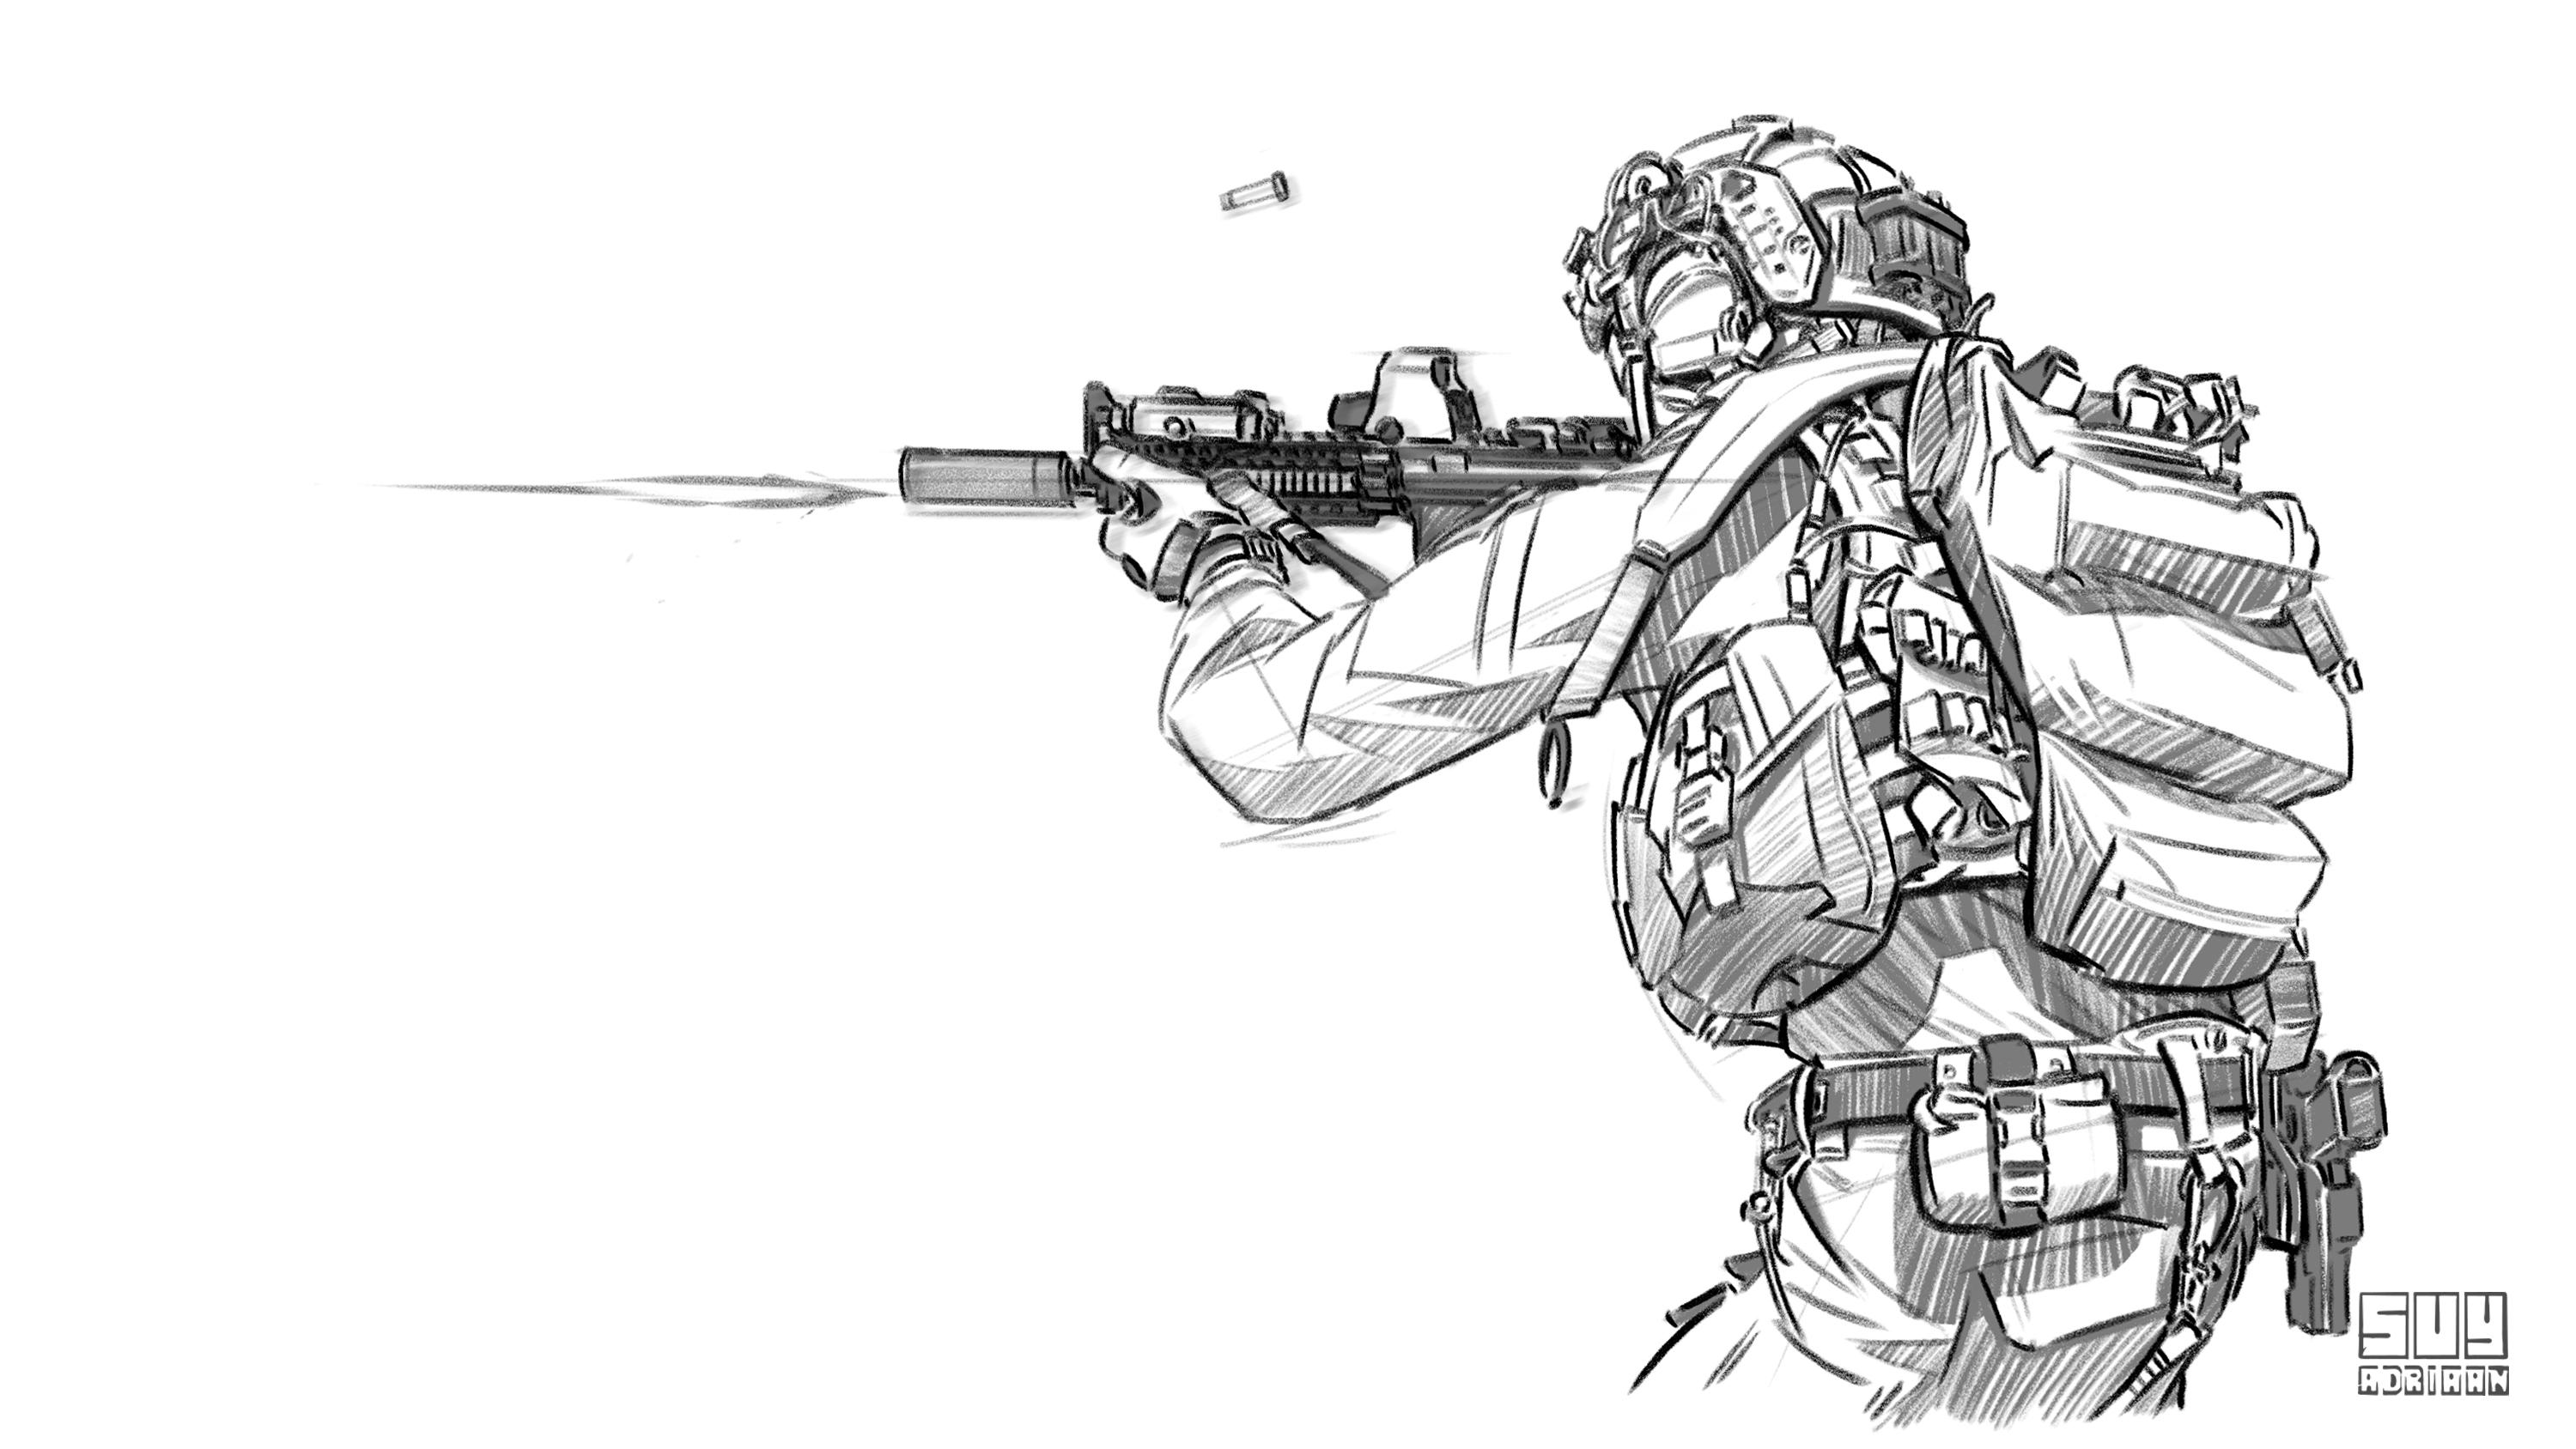 It S Been A While So Here S Another Operator For You Guys